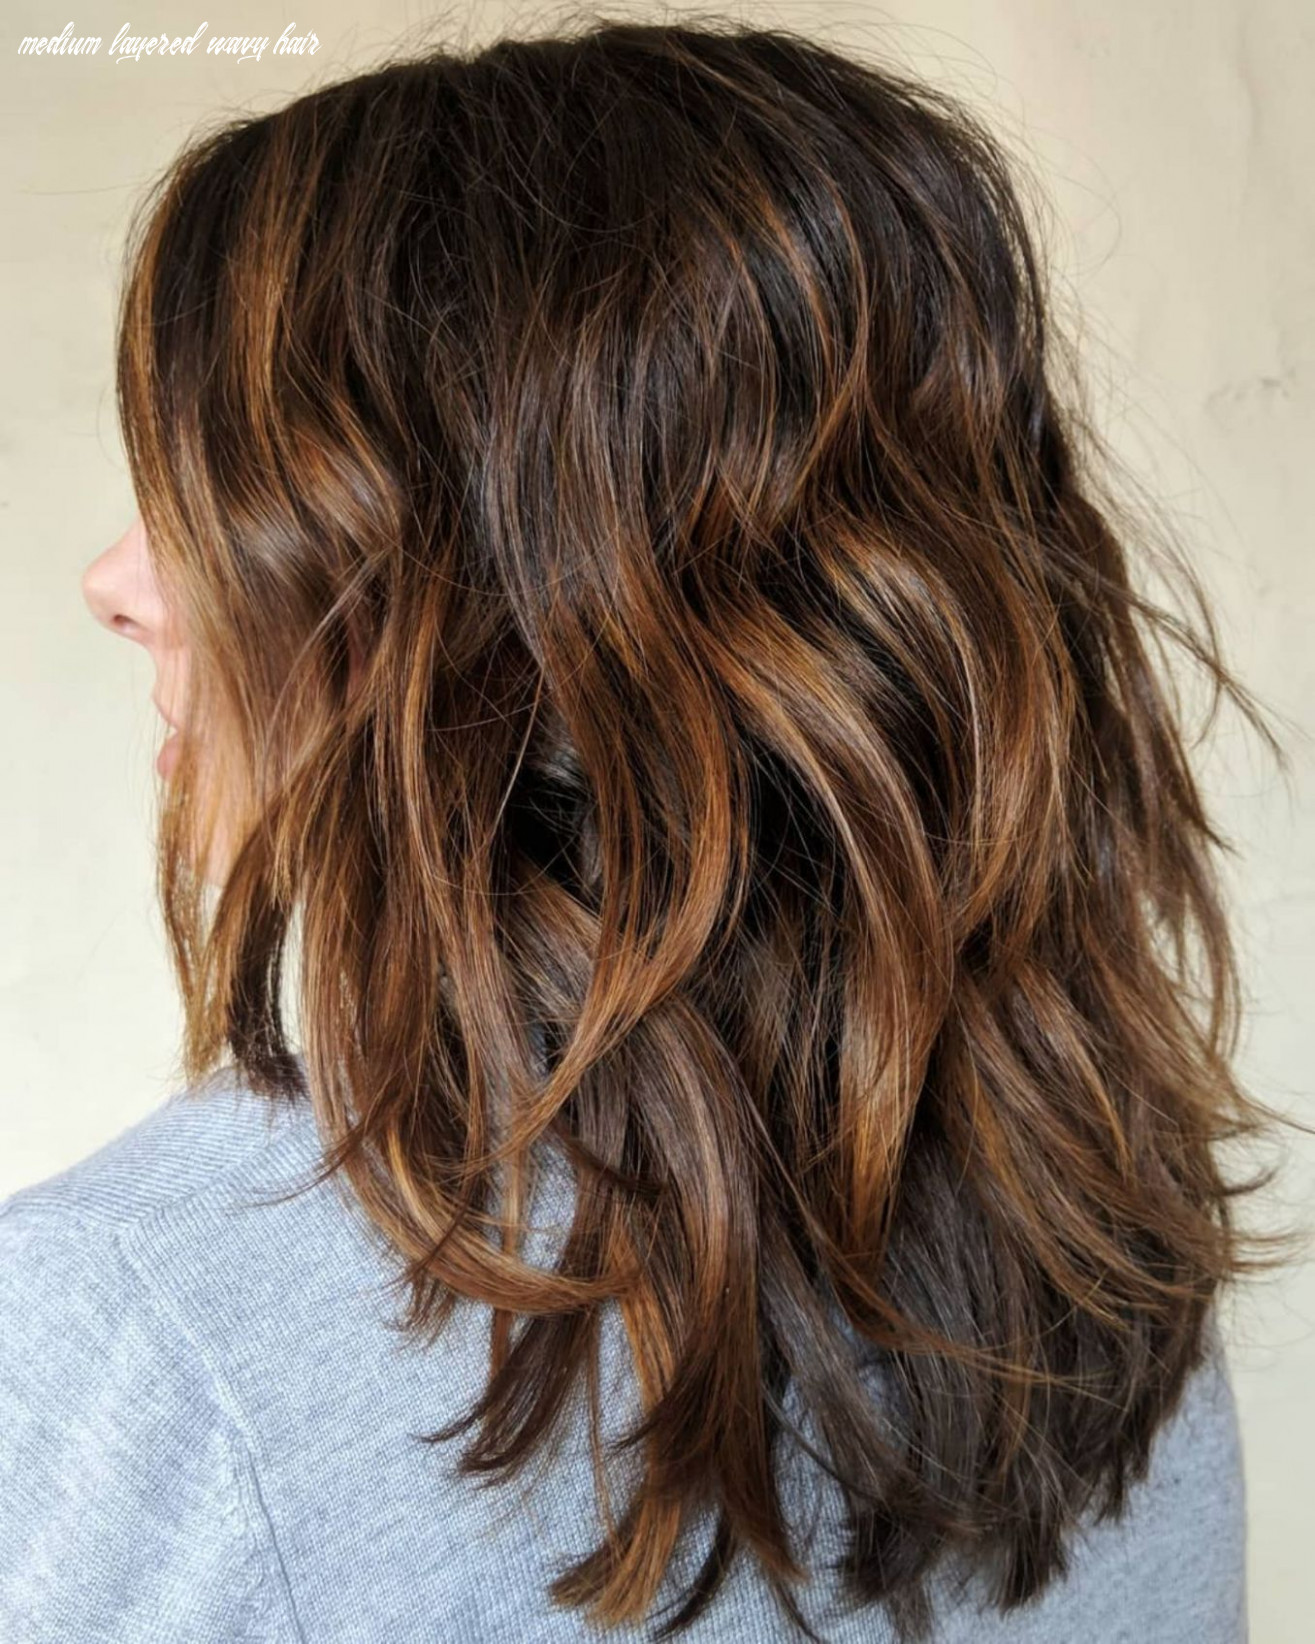 Pin on hair medium layered wavy hair